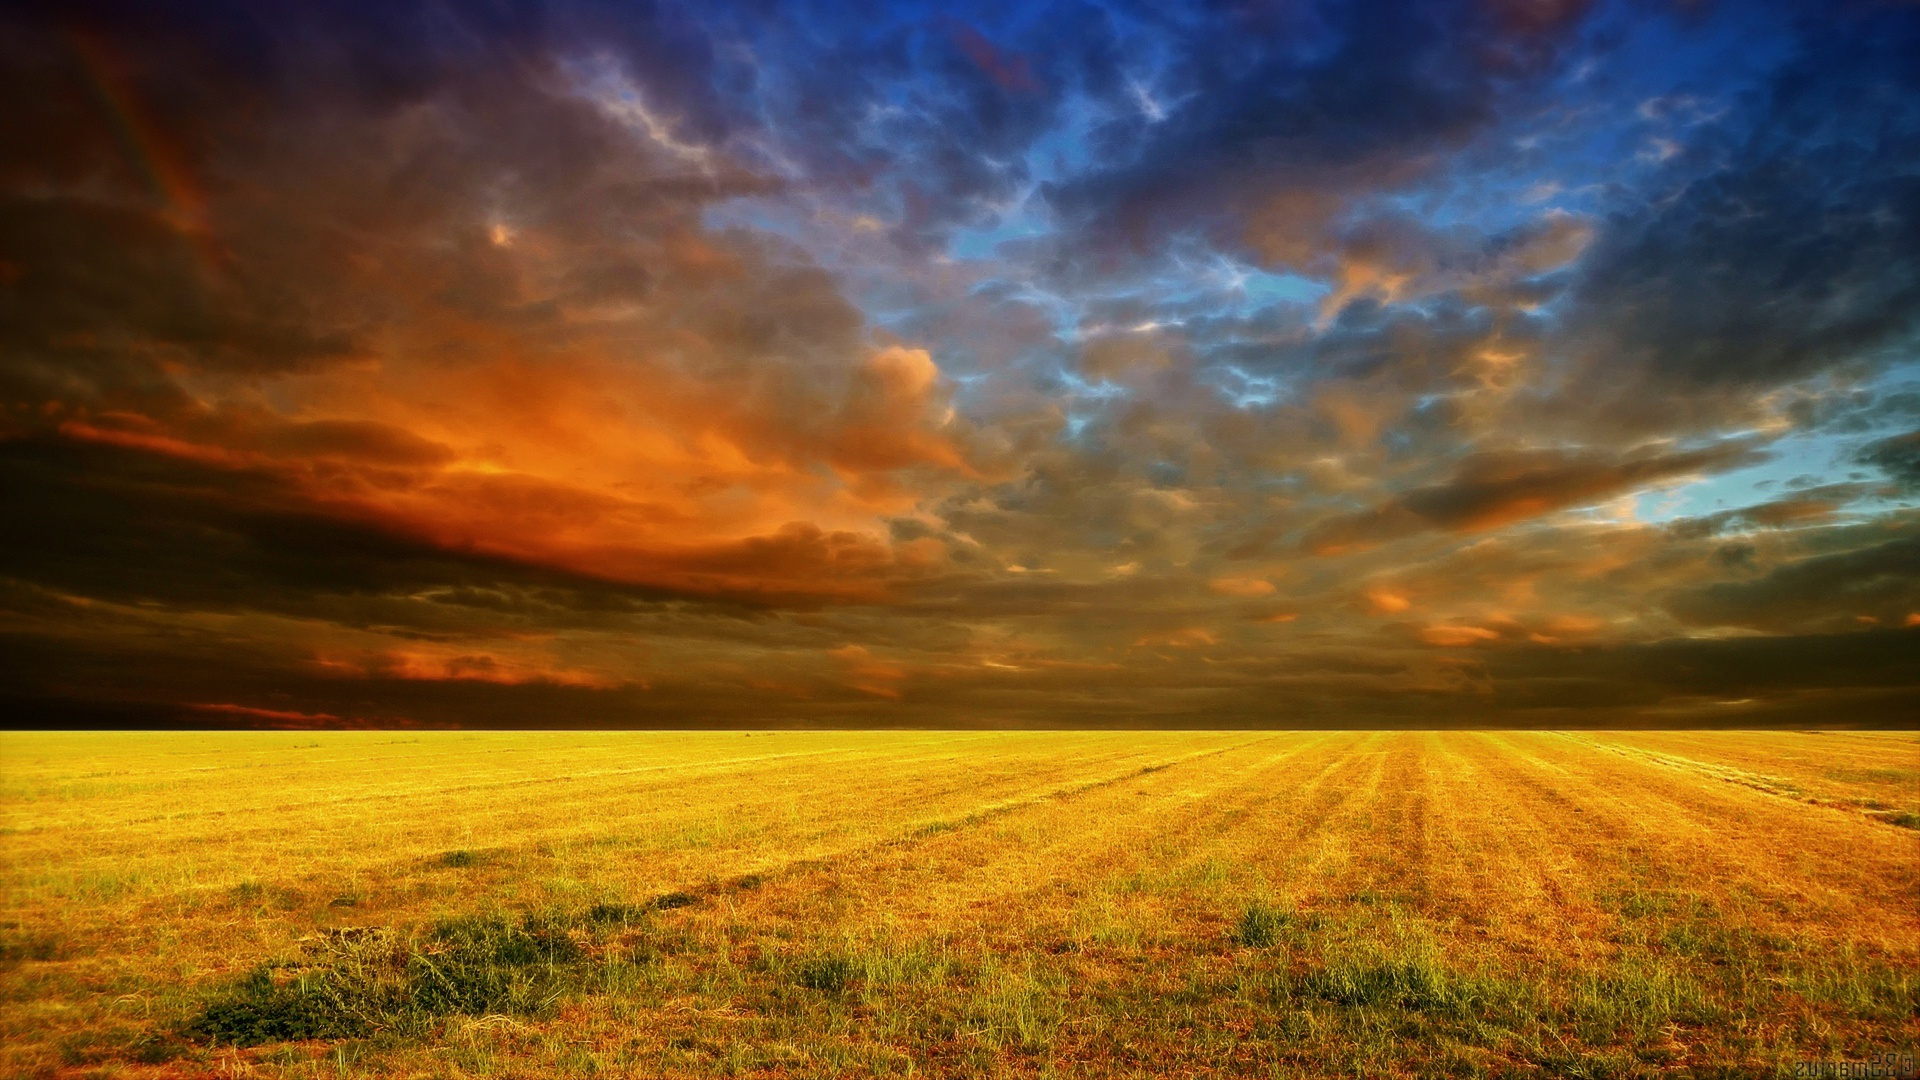 Cloudy sunset cornfield Wallpaper in 1920x1080 HD Resolutions